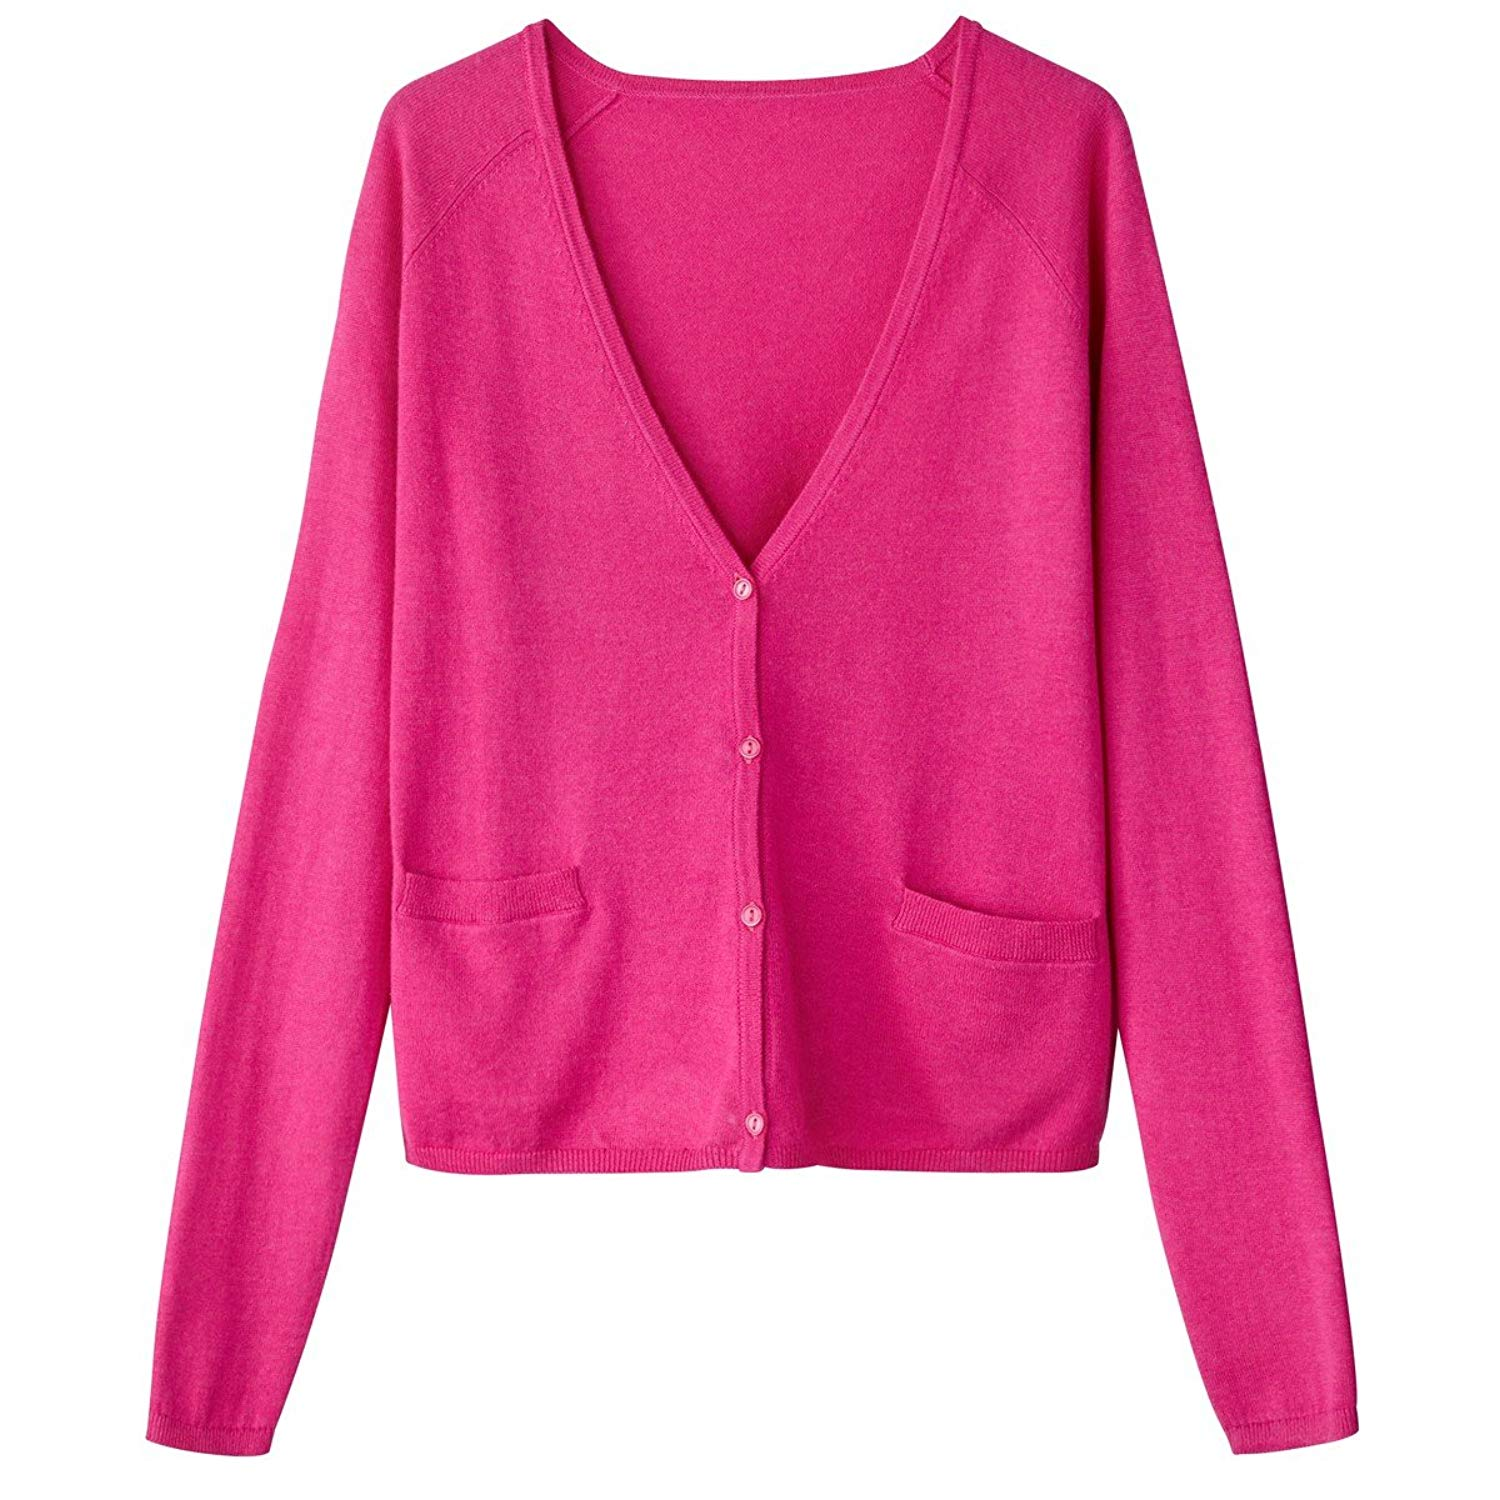 f34fdfa8a8 Get Quotations · La Redoute Collections Womens Cropped V-Neck Cardigan